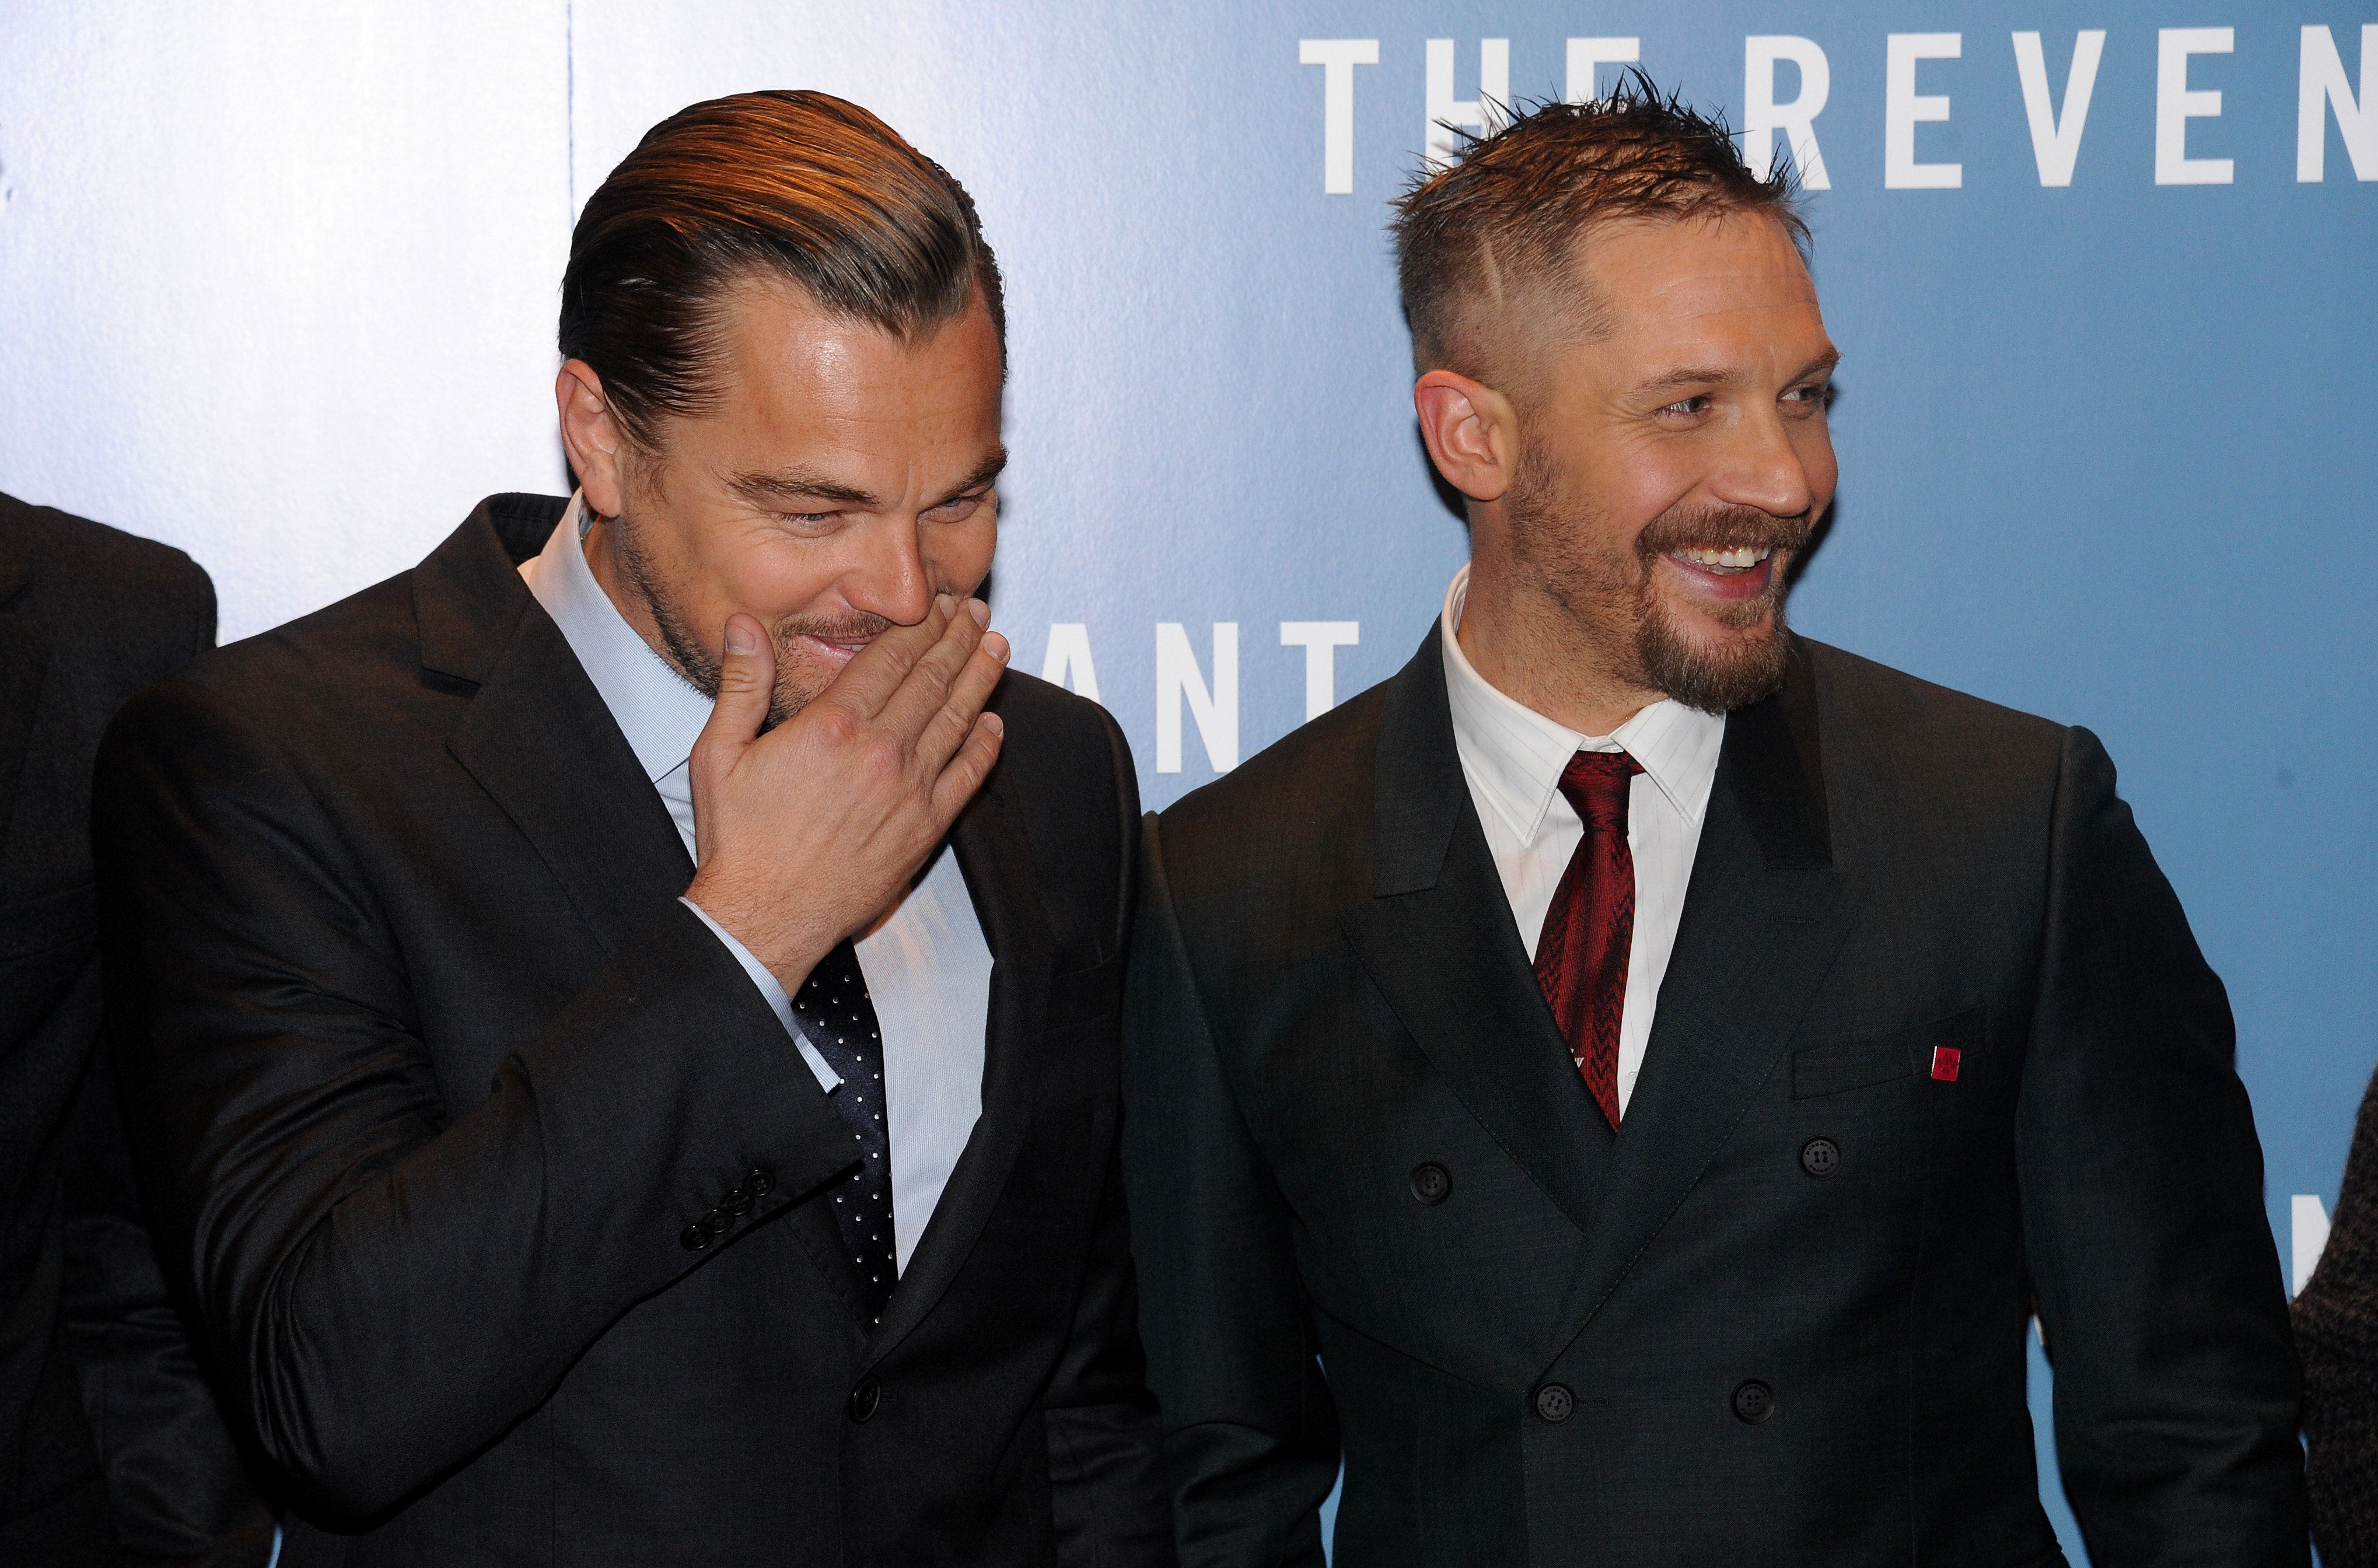 LONDON, ENGLAND - JANUARY 14:  Leonardo DiCaprio (L) and Tom Hardy attend UK Premiere of 'The Revenant' at Empire Leicester Square on January 14, 2016 in London, England.  (Photo by Dave J Hogan/Getty Images)